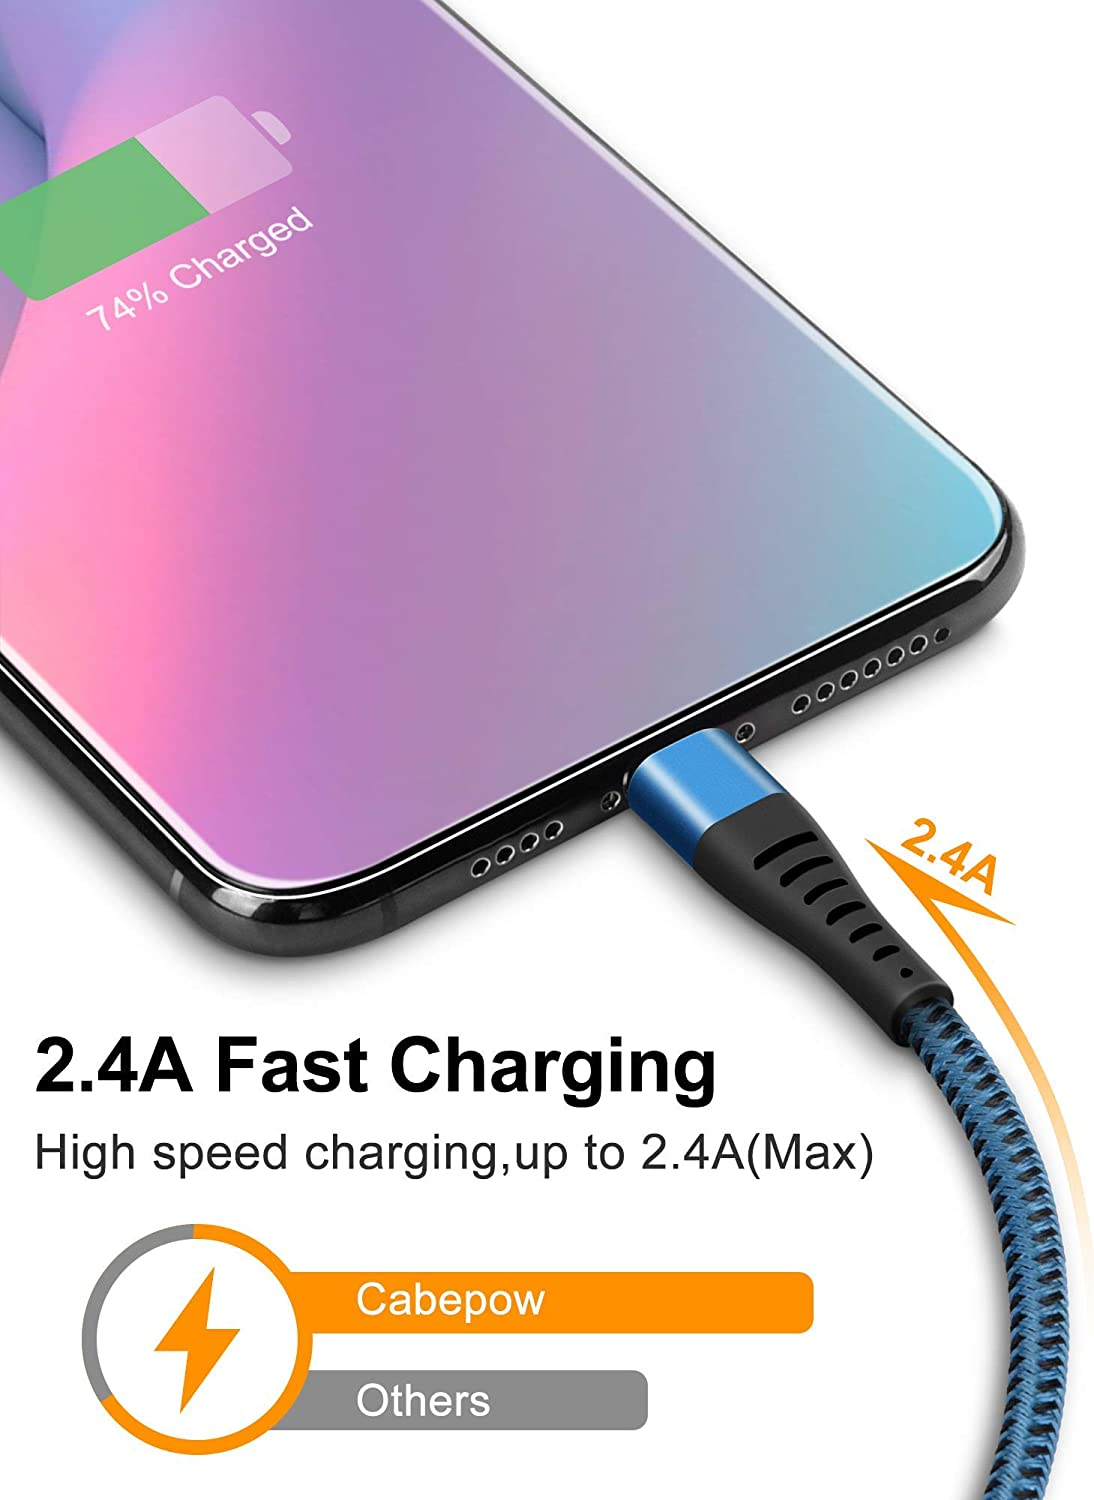 CABEPOW Long 3Pack 10 Foot iPhone Charger Cable Lightning Cable 10ft Data Sync iPhone USB Charging Cable Cord for iPhone 11//11 Pro//11 Pro Max//XS//XS Max//XR//X//8//8 Plus//7//7 Plus//6//6 Plus//5//SE-Blue